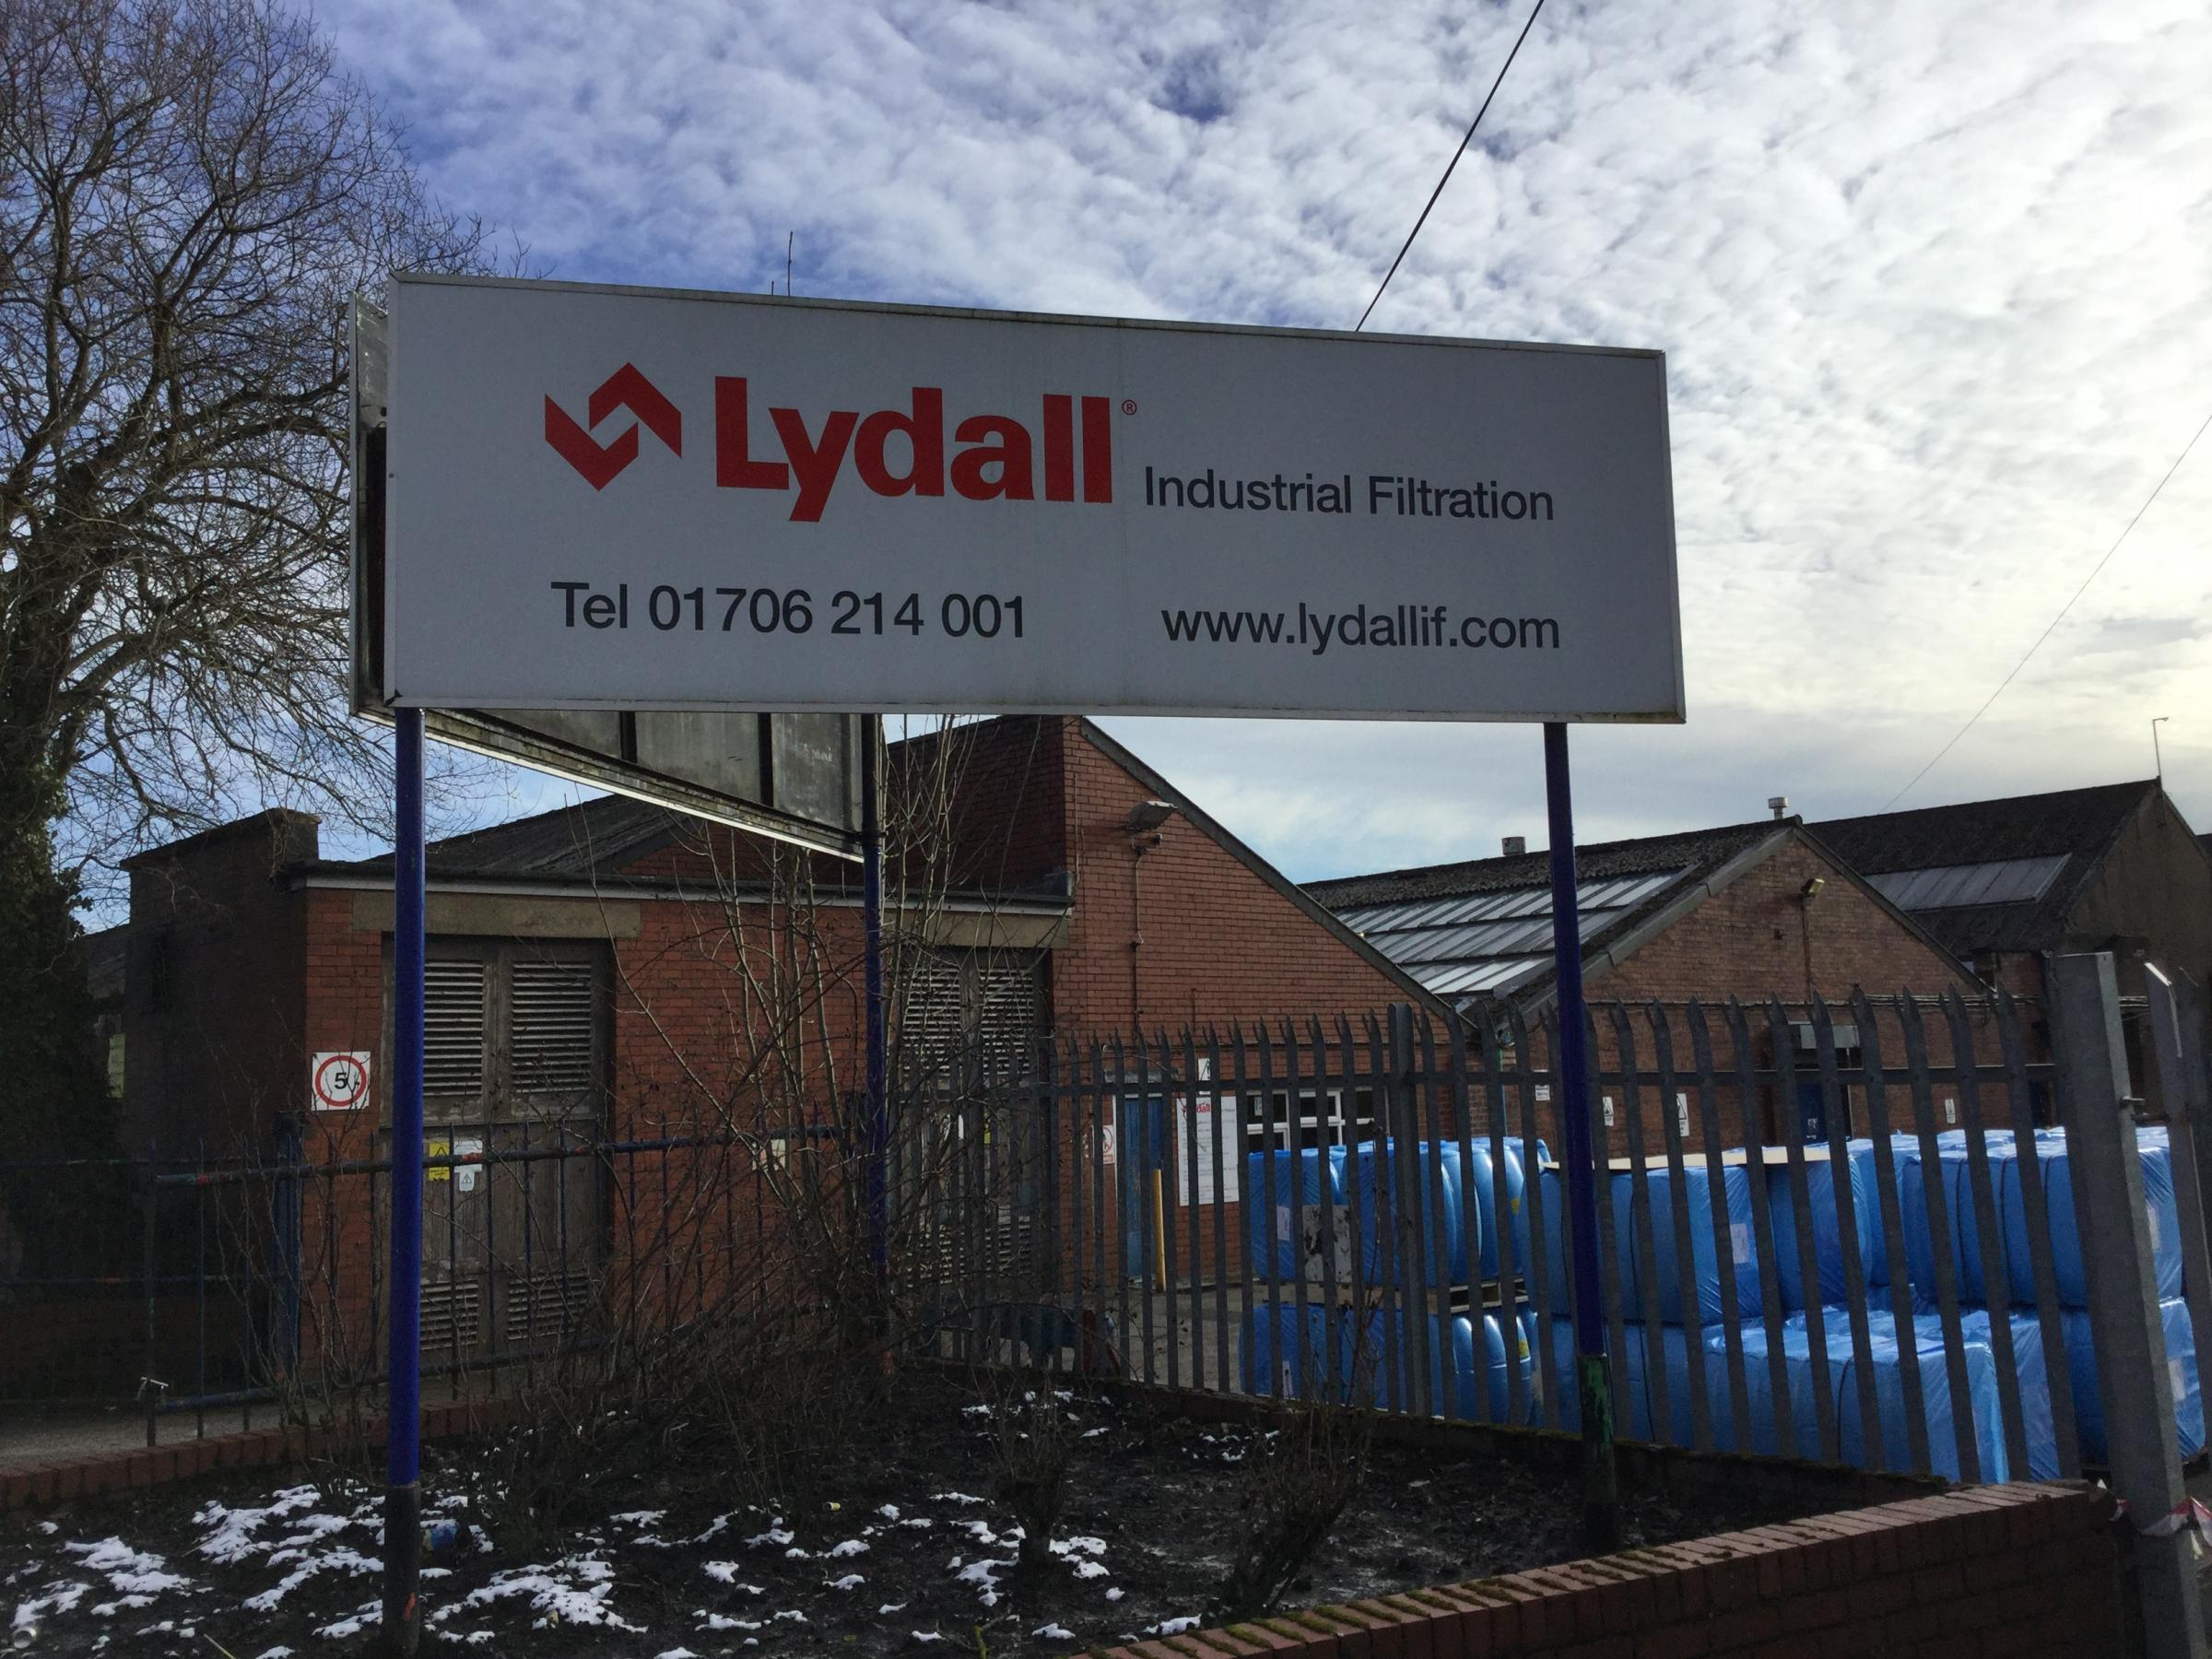 Lydall Industrial Filtration in Walshaw Road, Bury